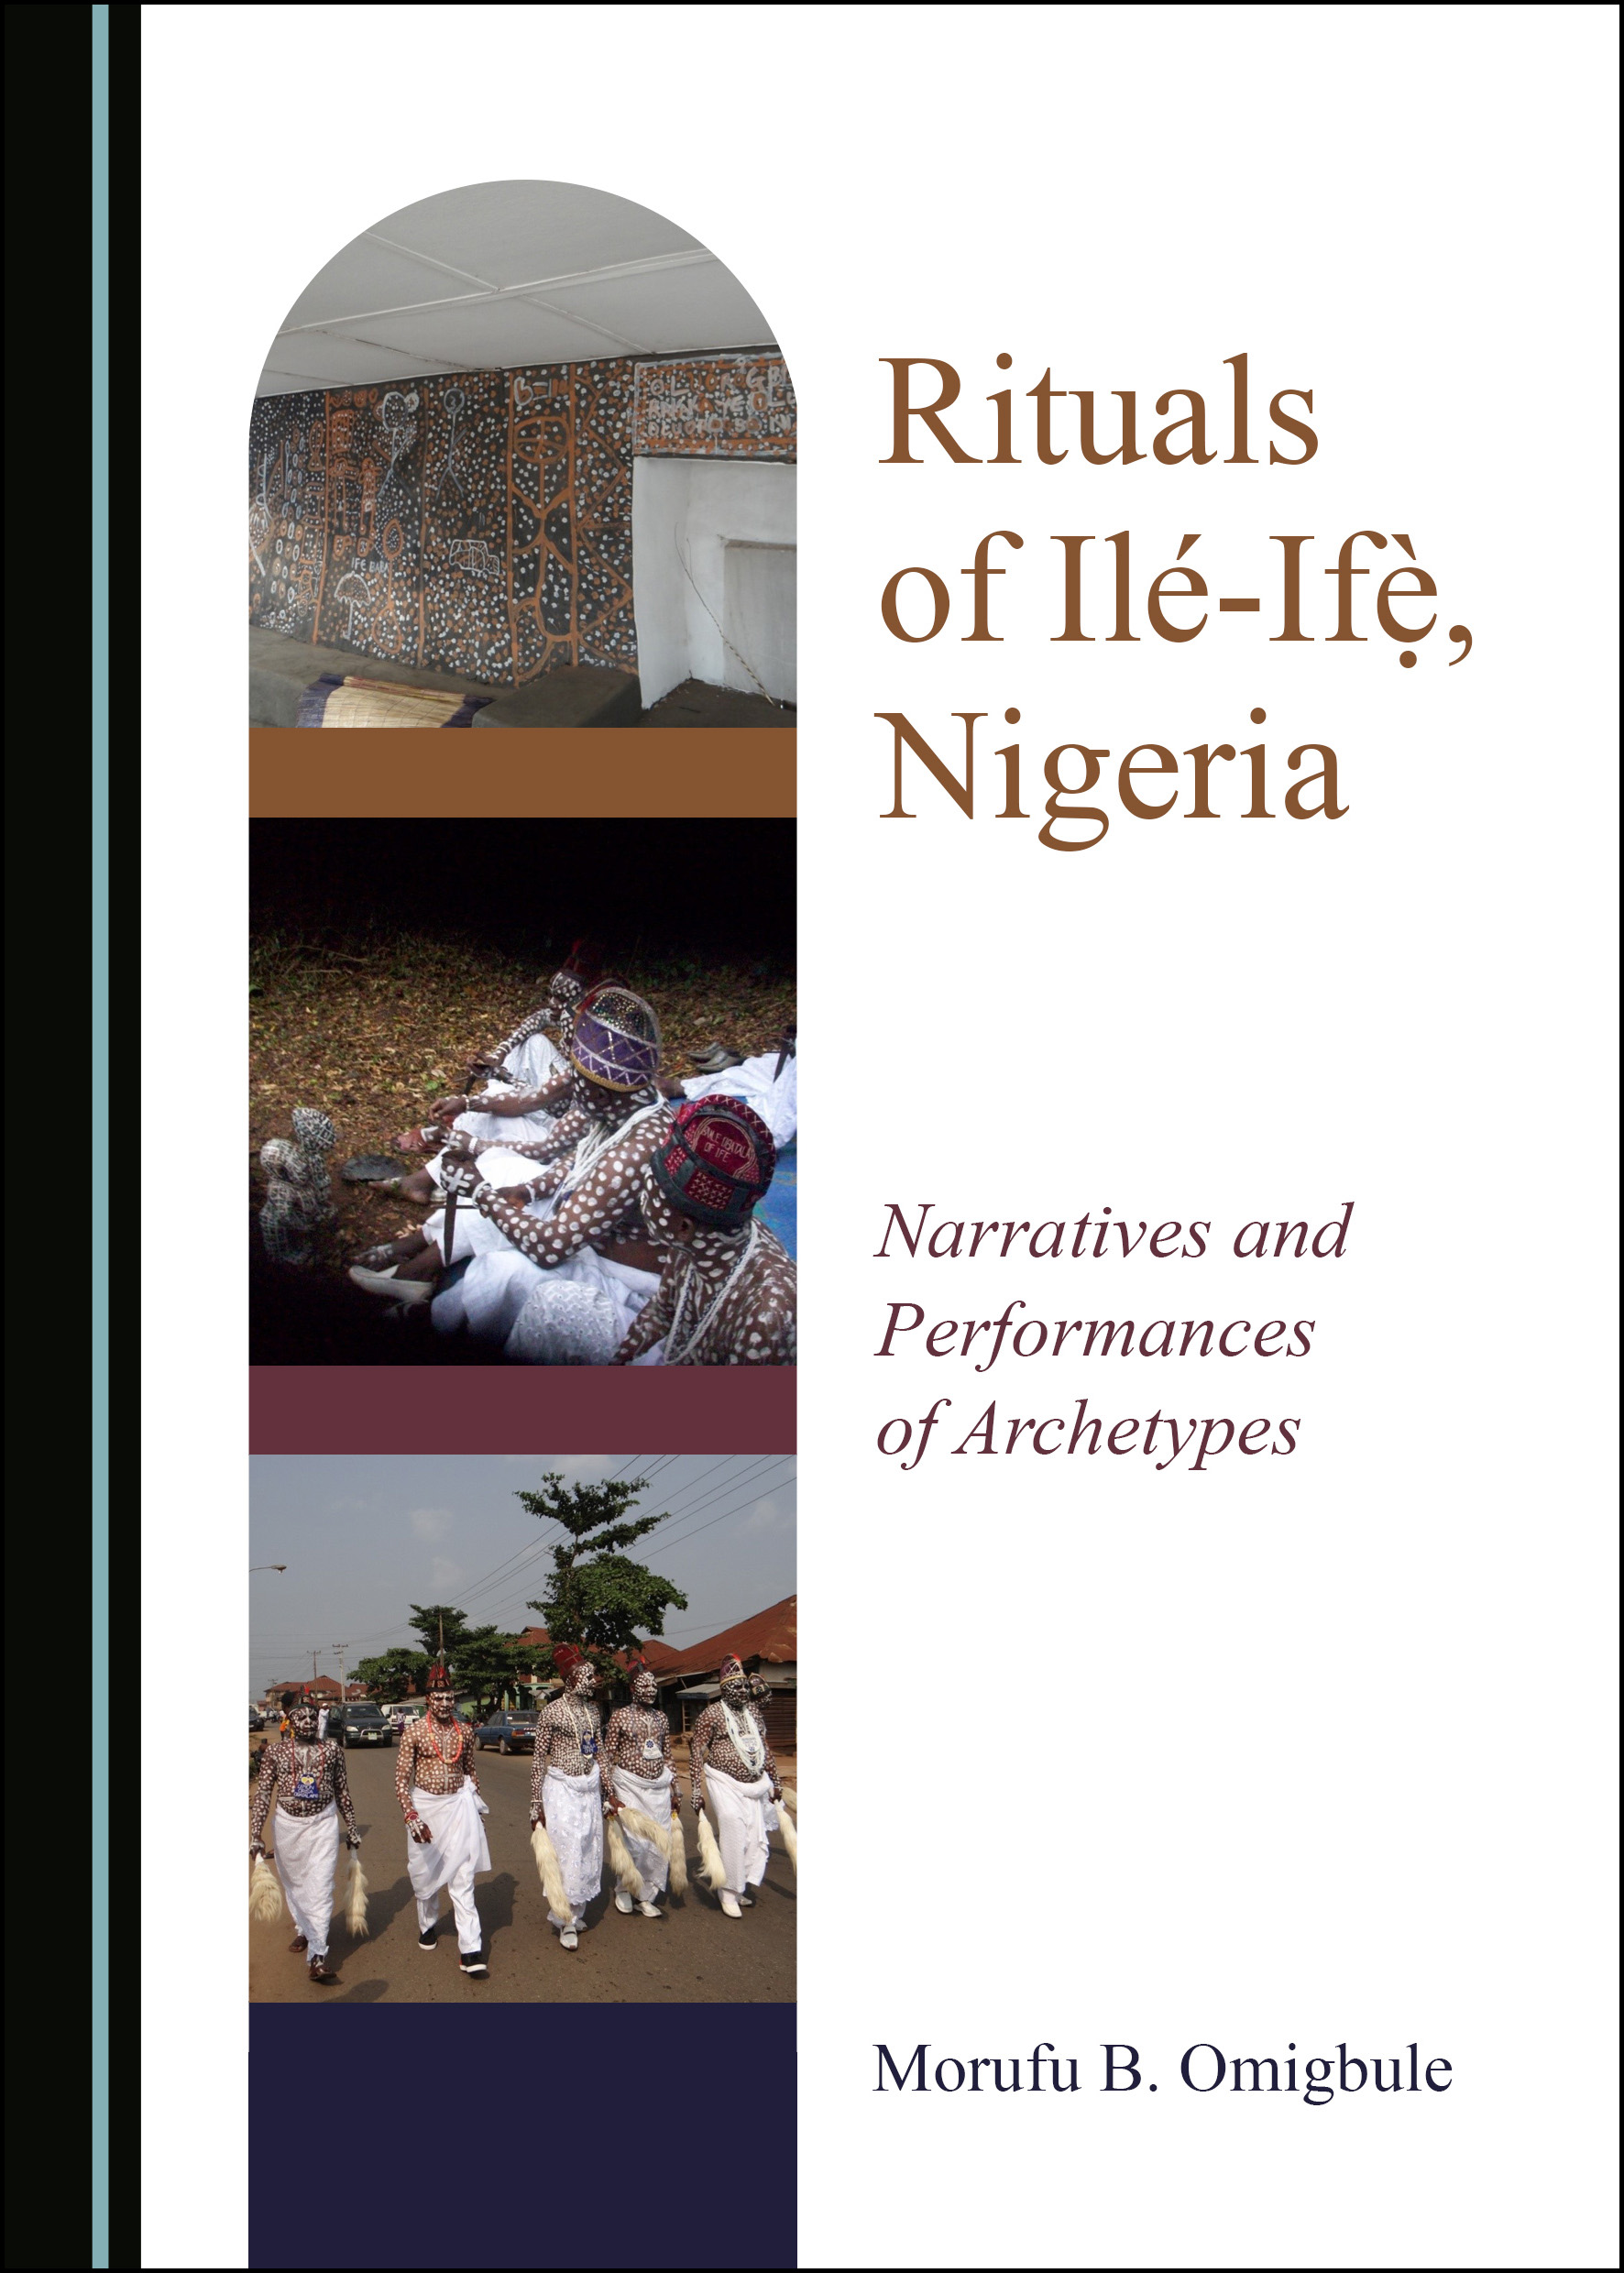 Rituals of Ilé-Ifẹ̀, Nigeria: Narratives and Performances of Archetypes